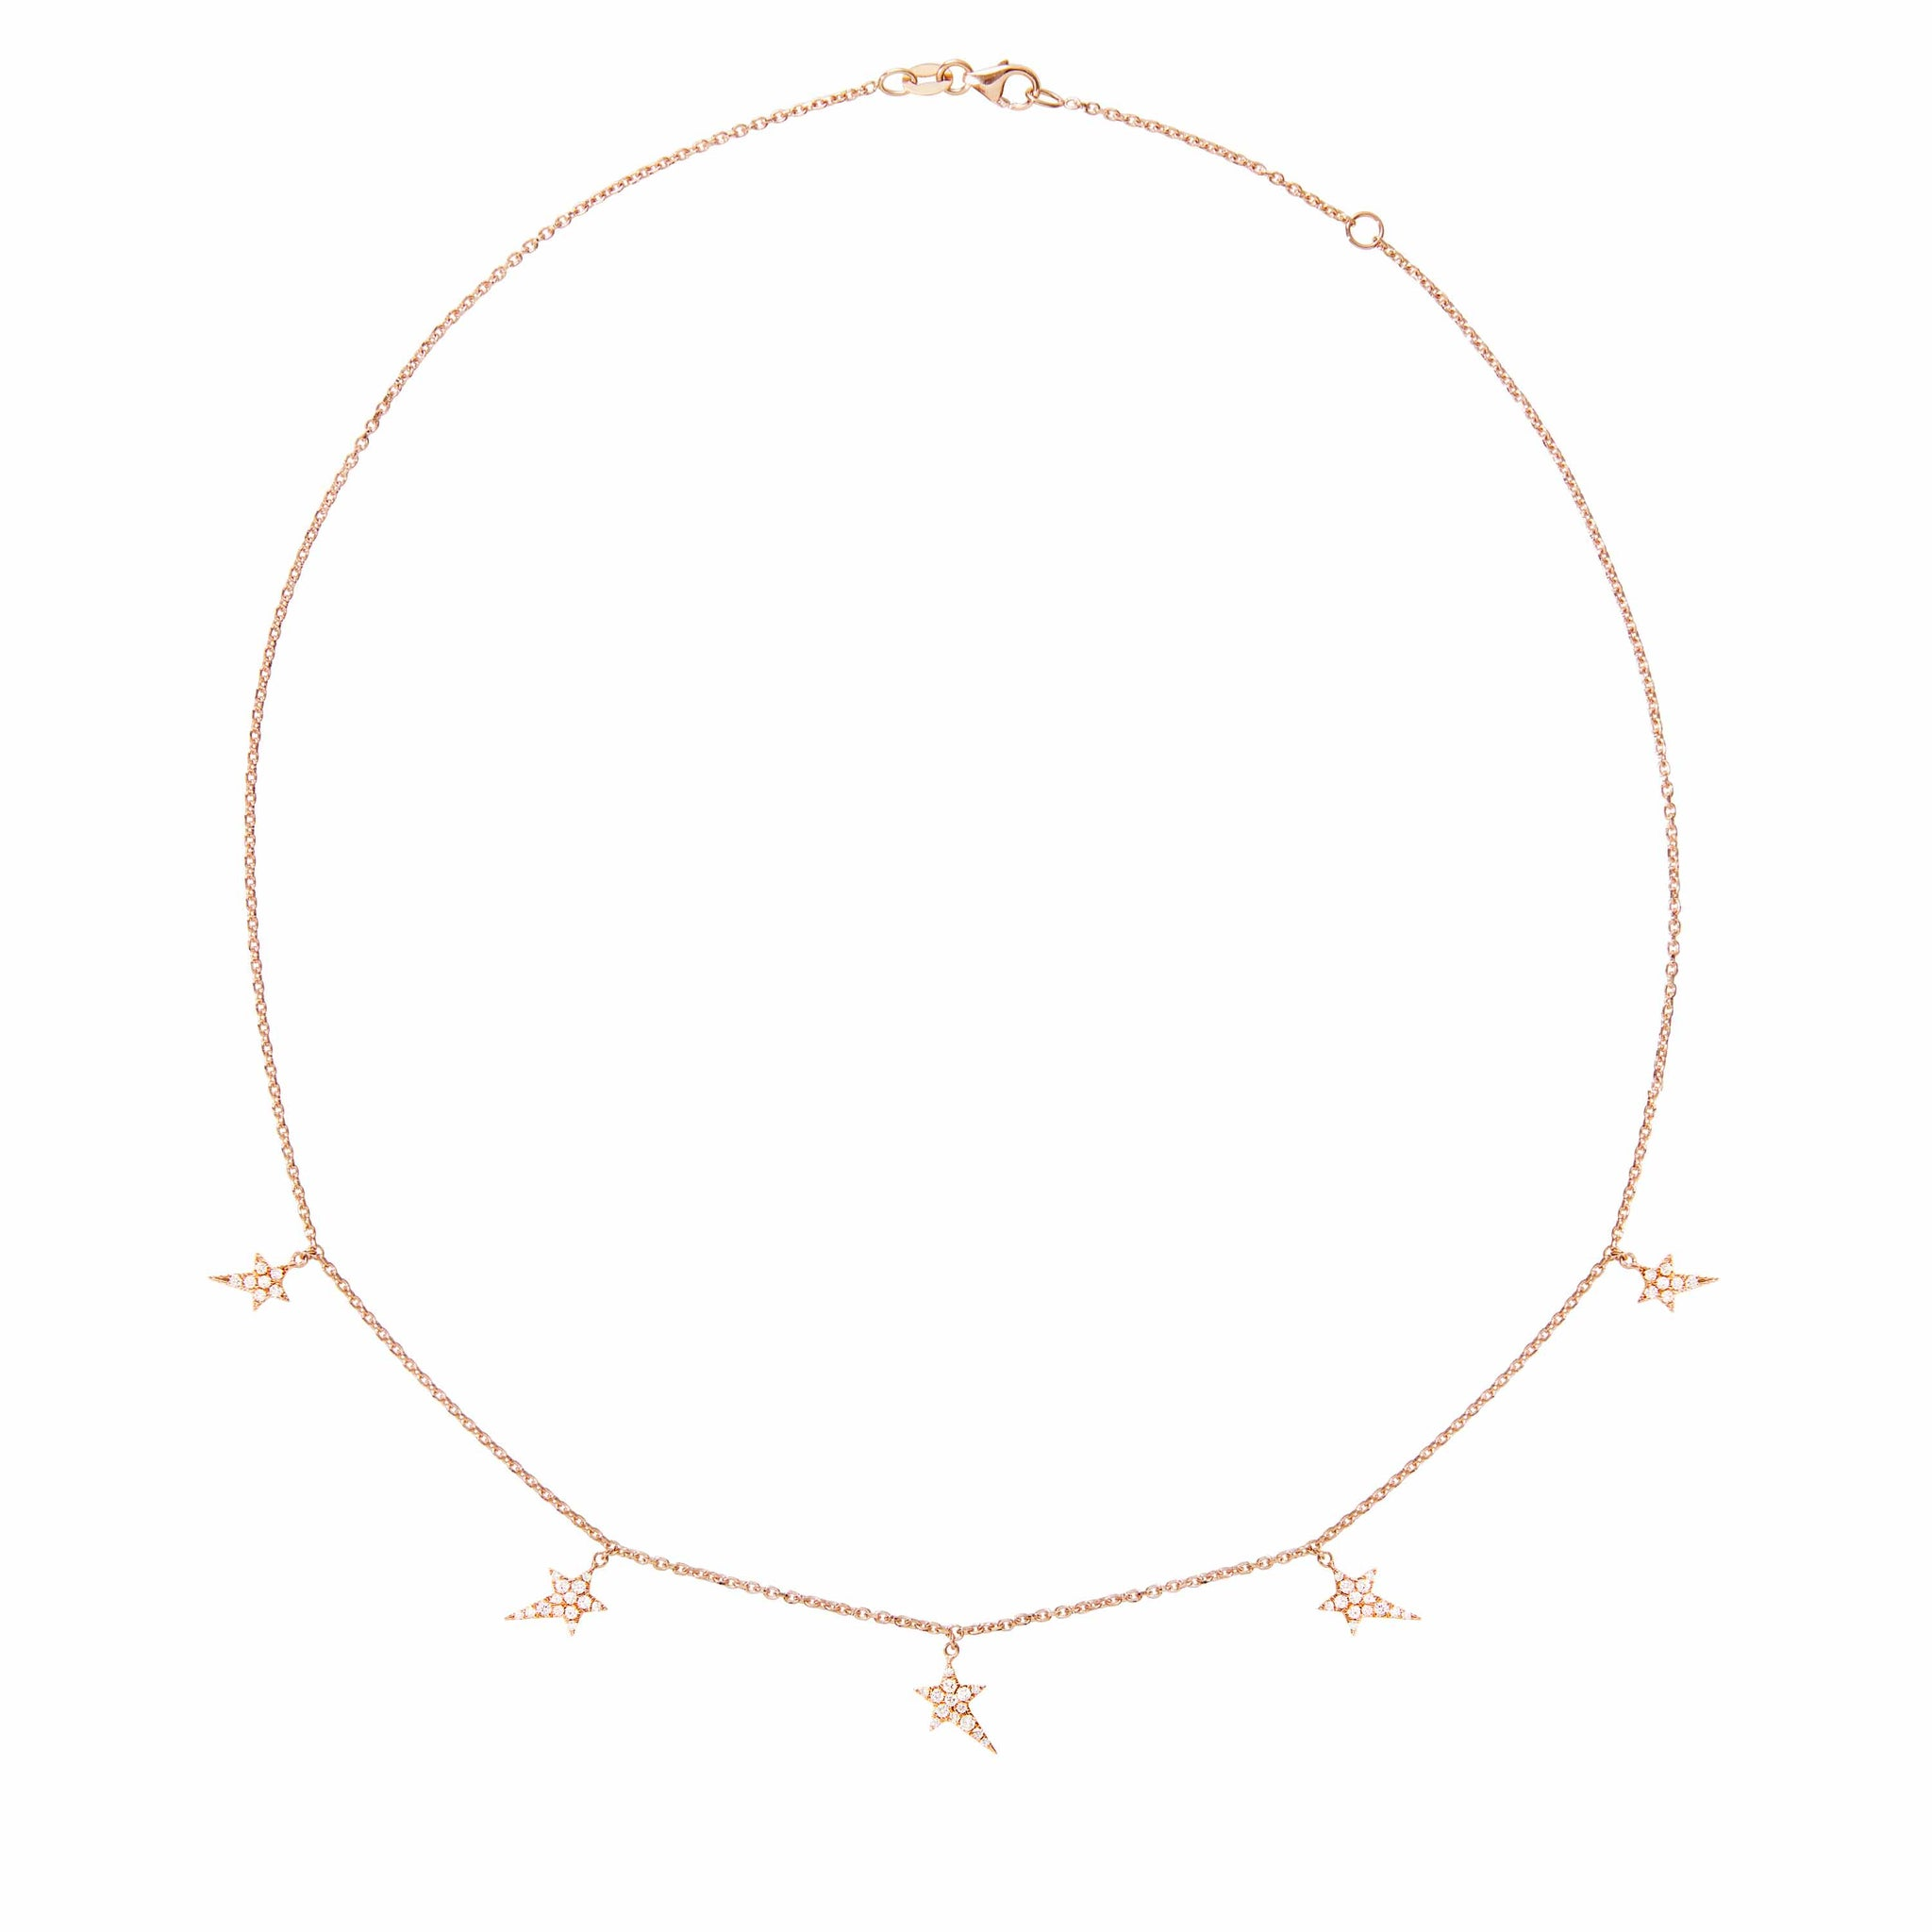 Diane Kordas 18k Rose Gold Multi-Star Charm Necklace